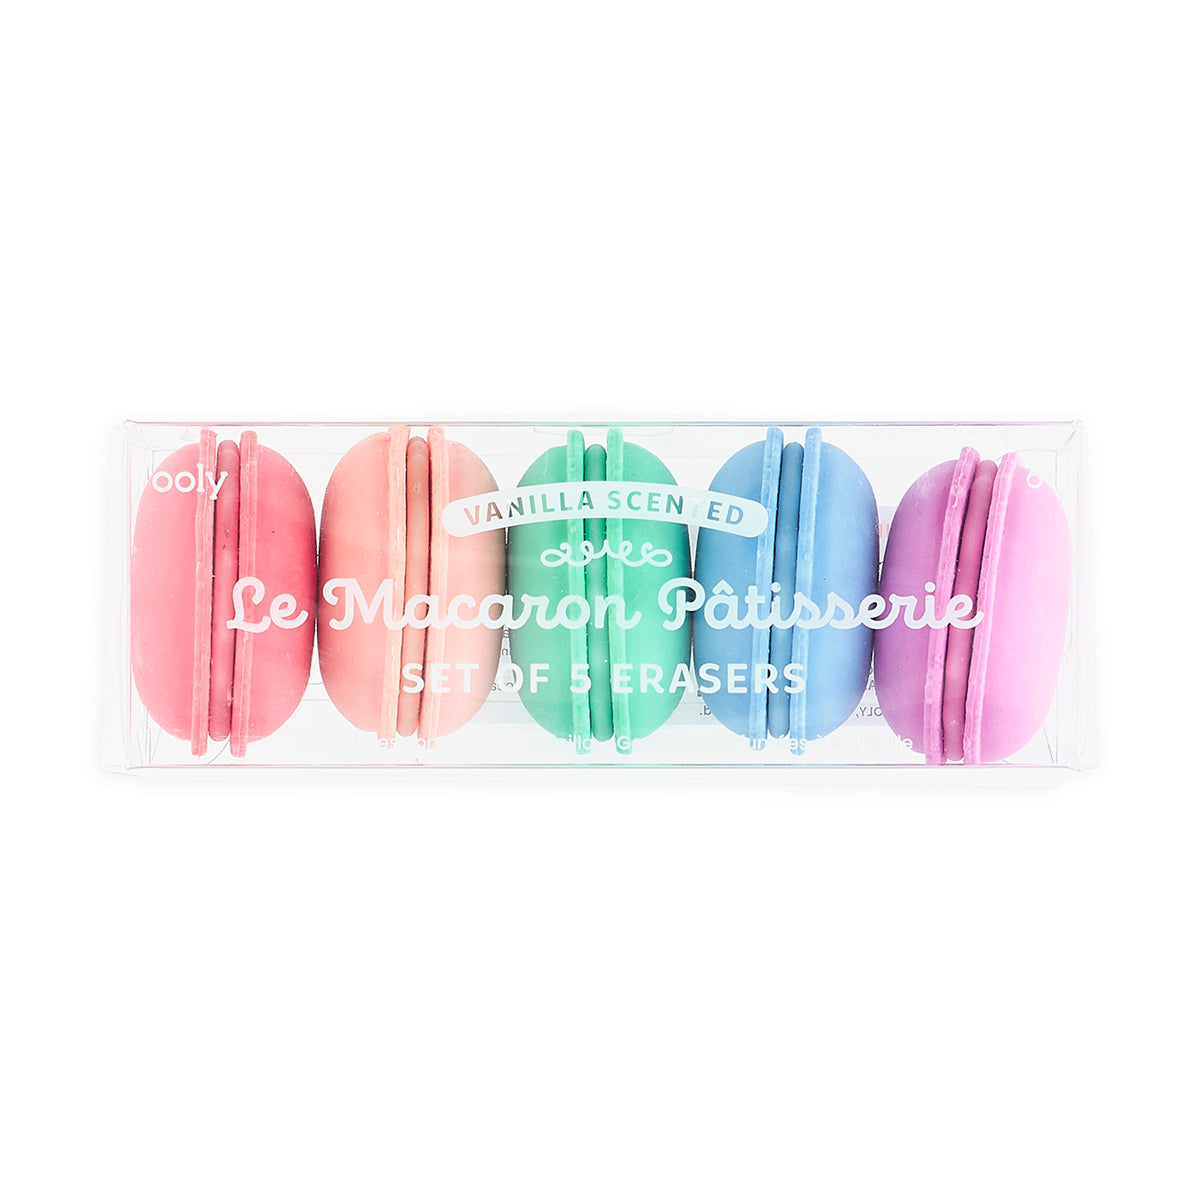 Le Macaron Patisserie Scented Erasers - Set of 5